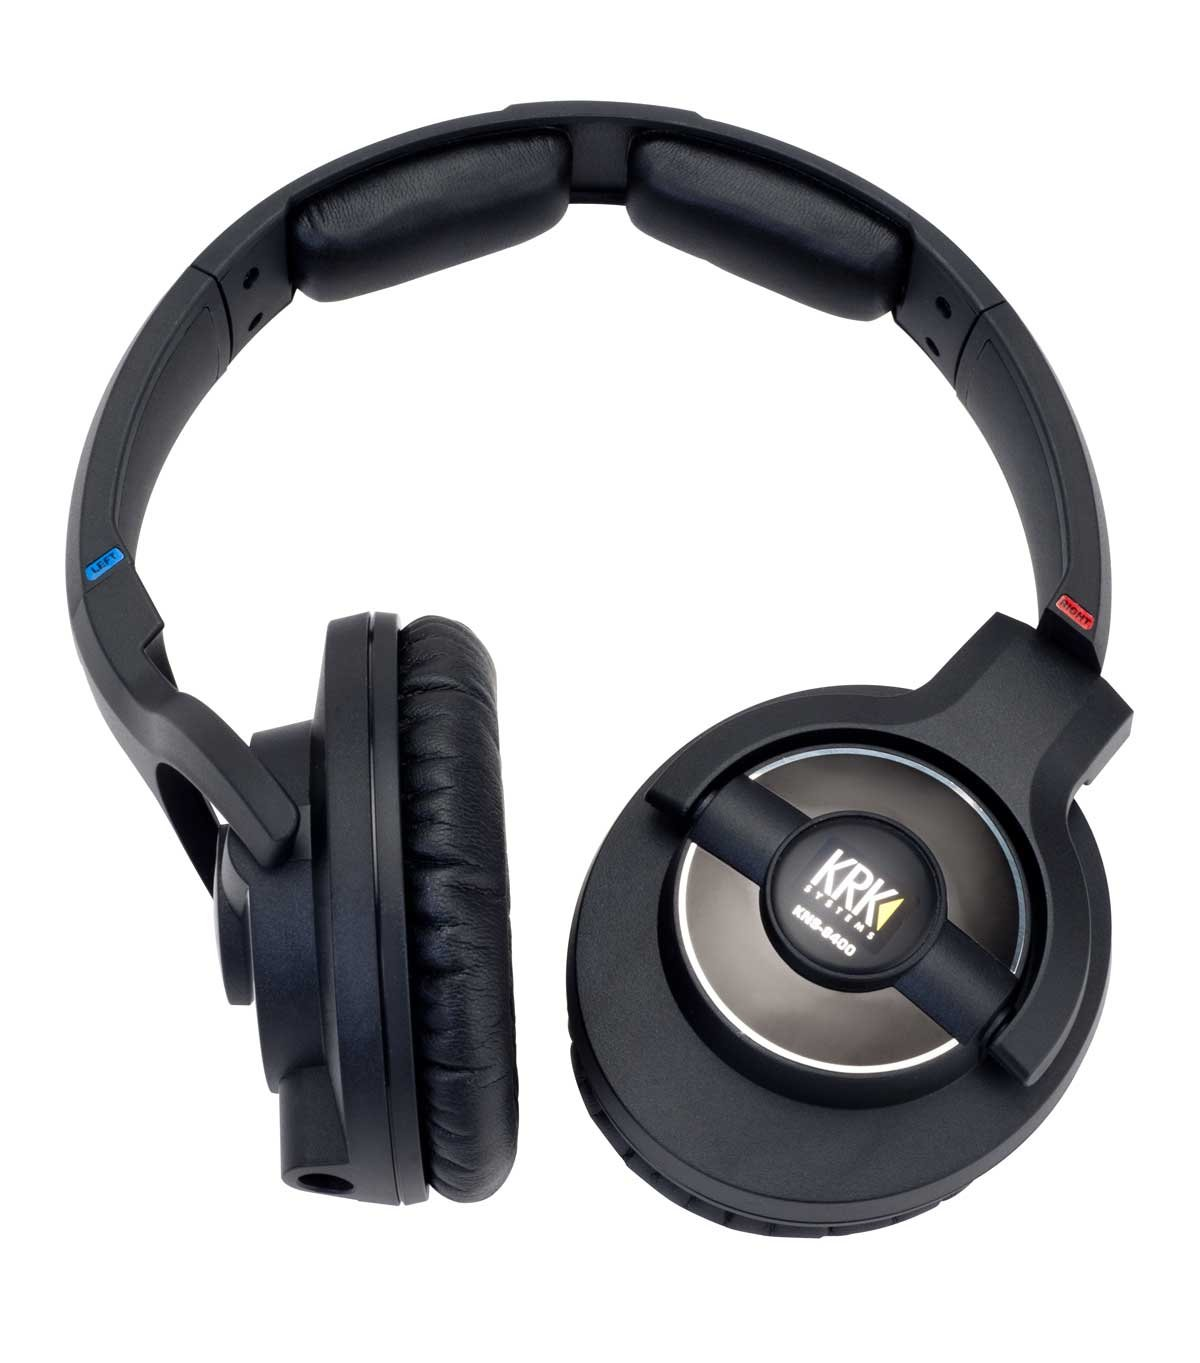 Headphones, dynamic, closed-back, 40mm neodymium drivers, 5Hz-23kHz